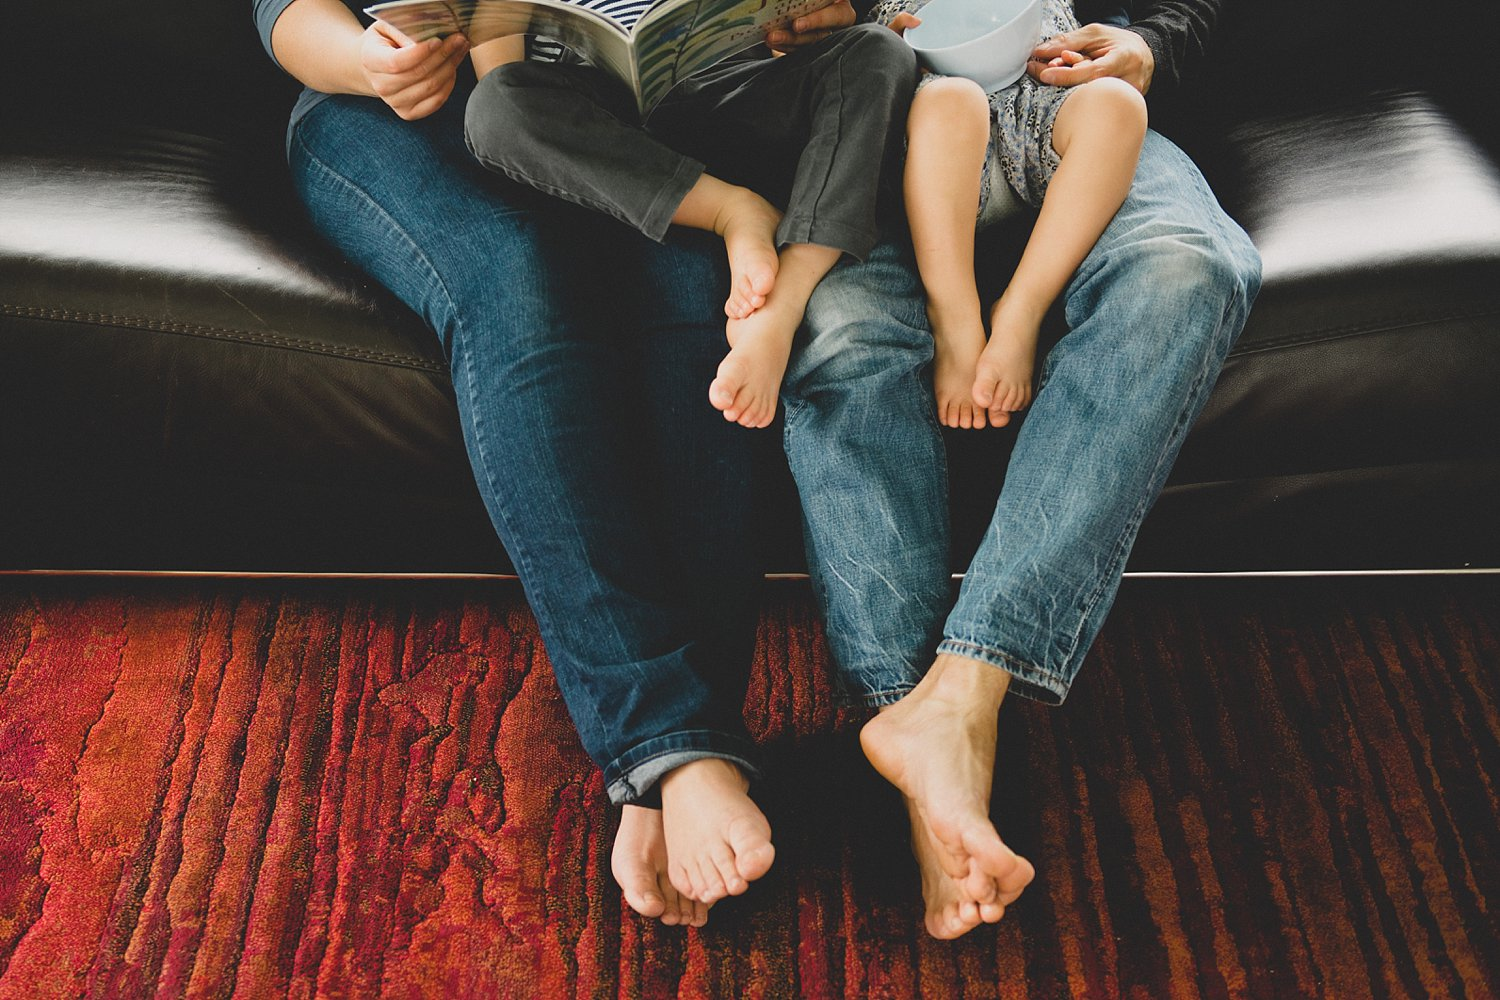 familys legs - 5 Tips for Doing Lifestyle Photo Sessions